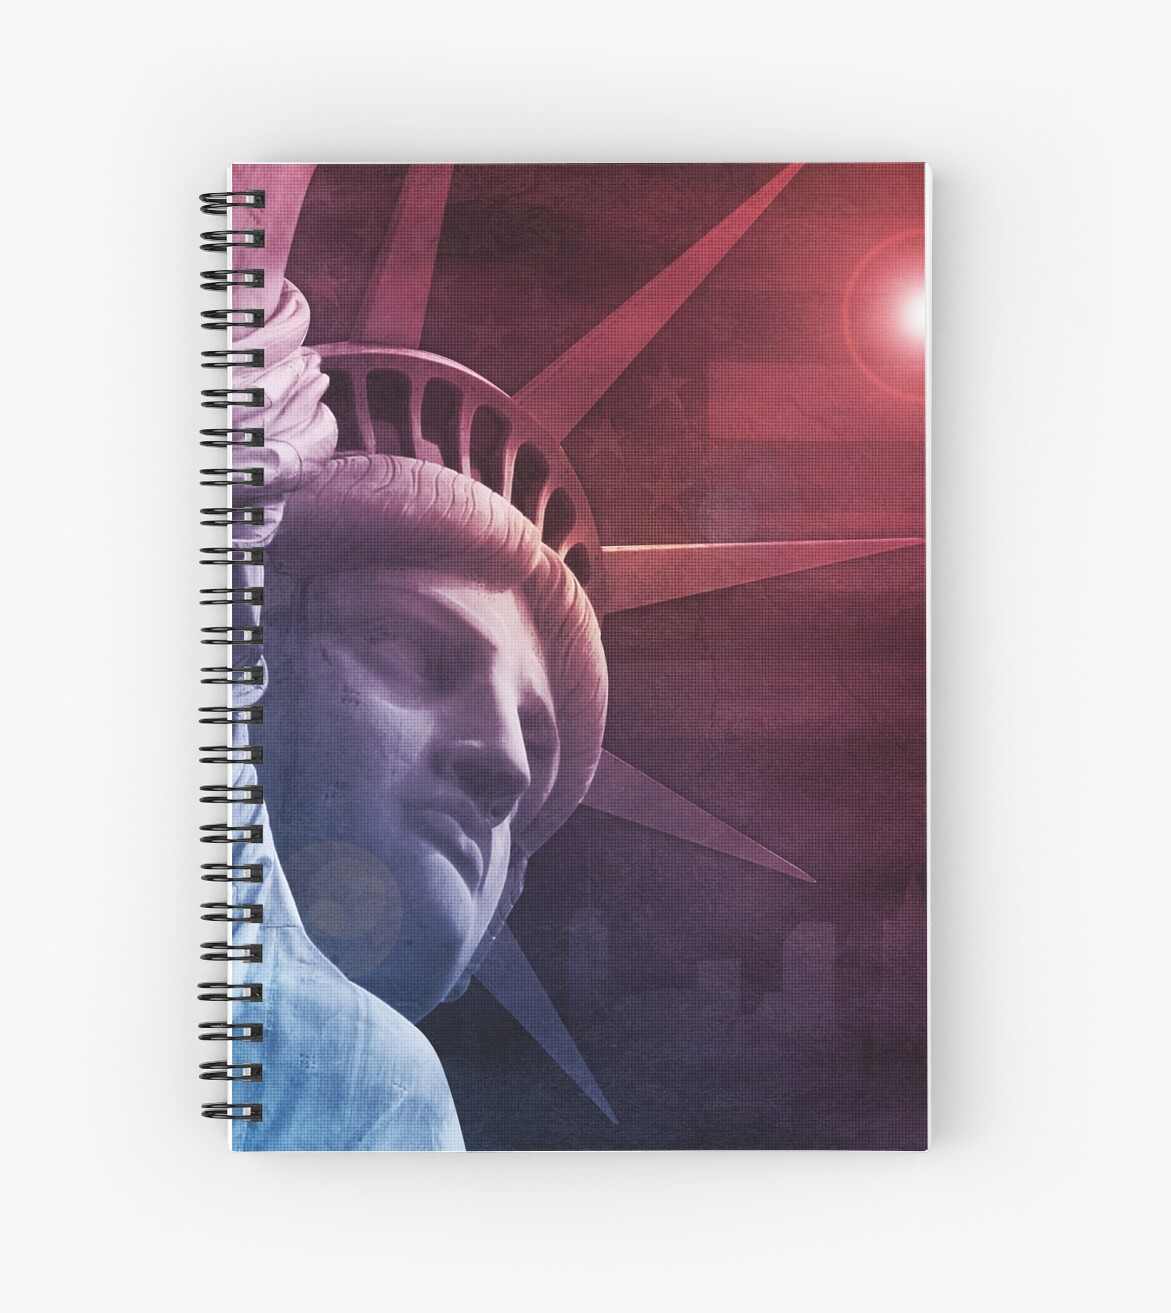 Patriotic Statue of Liberty by morningdance